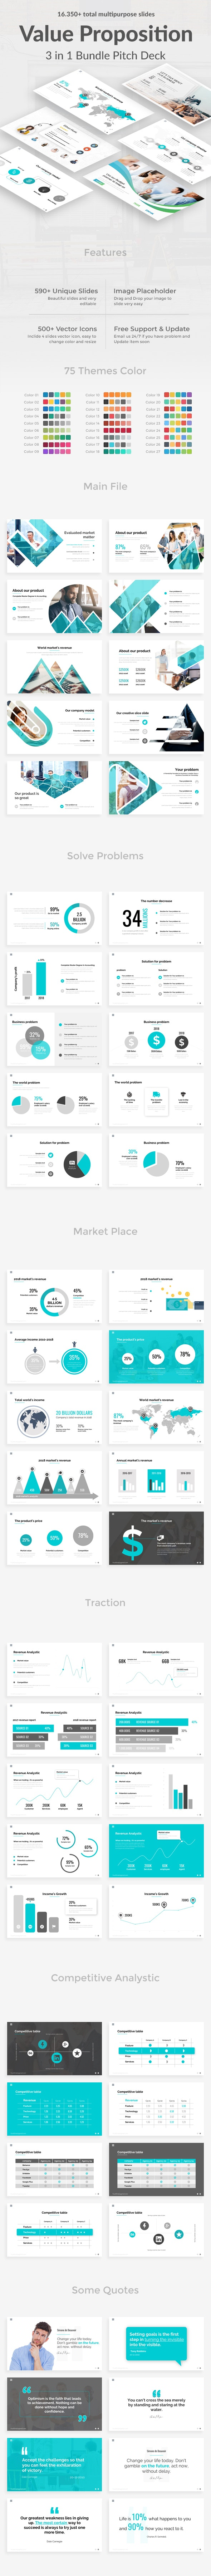 Value Proposition 3 in 1 Pitch Deck Bundle Powerpoint Template - Business PowerPoint Templates